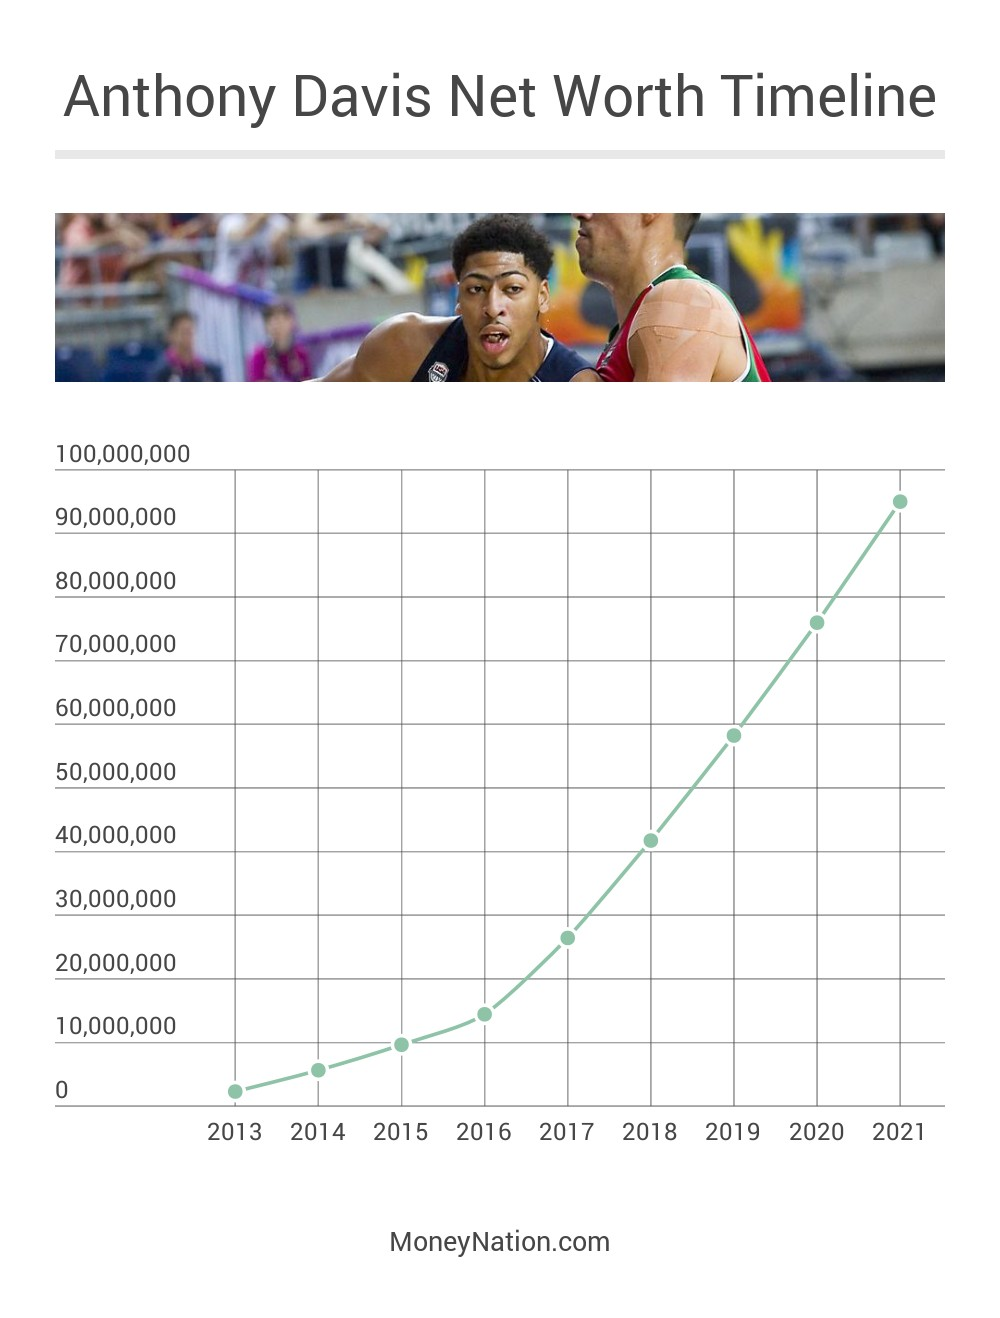 Anthony Davis Net Worth Timeline